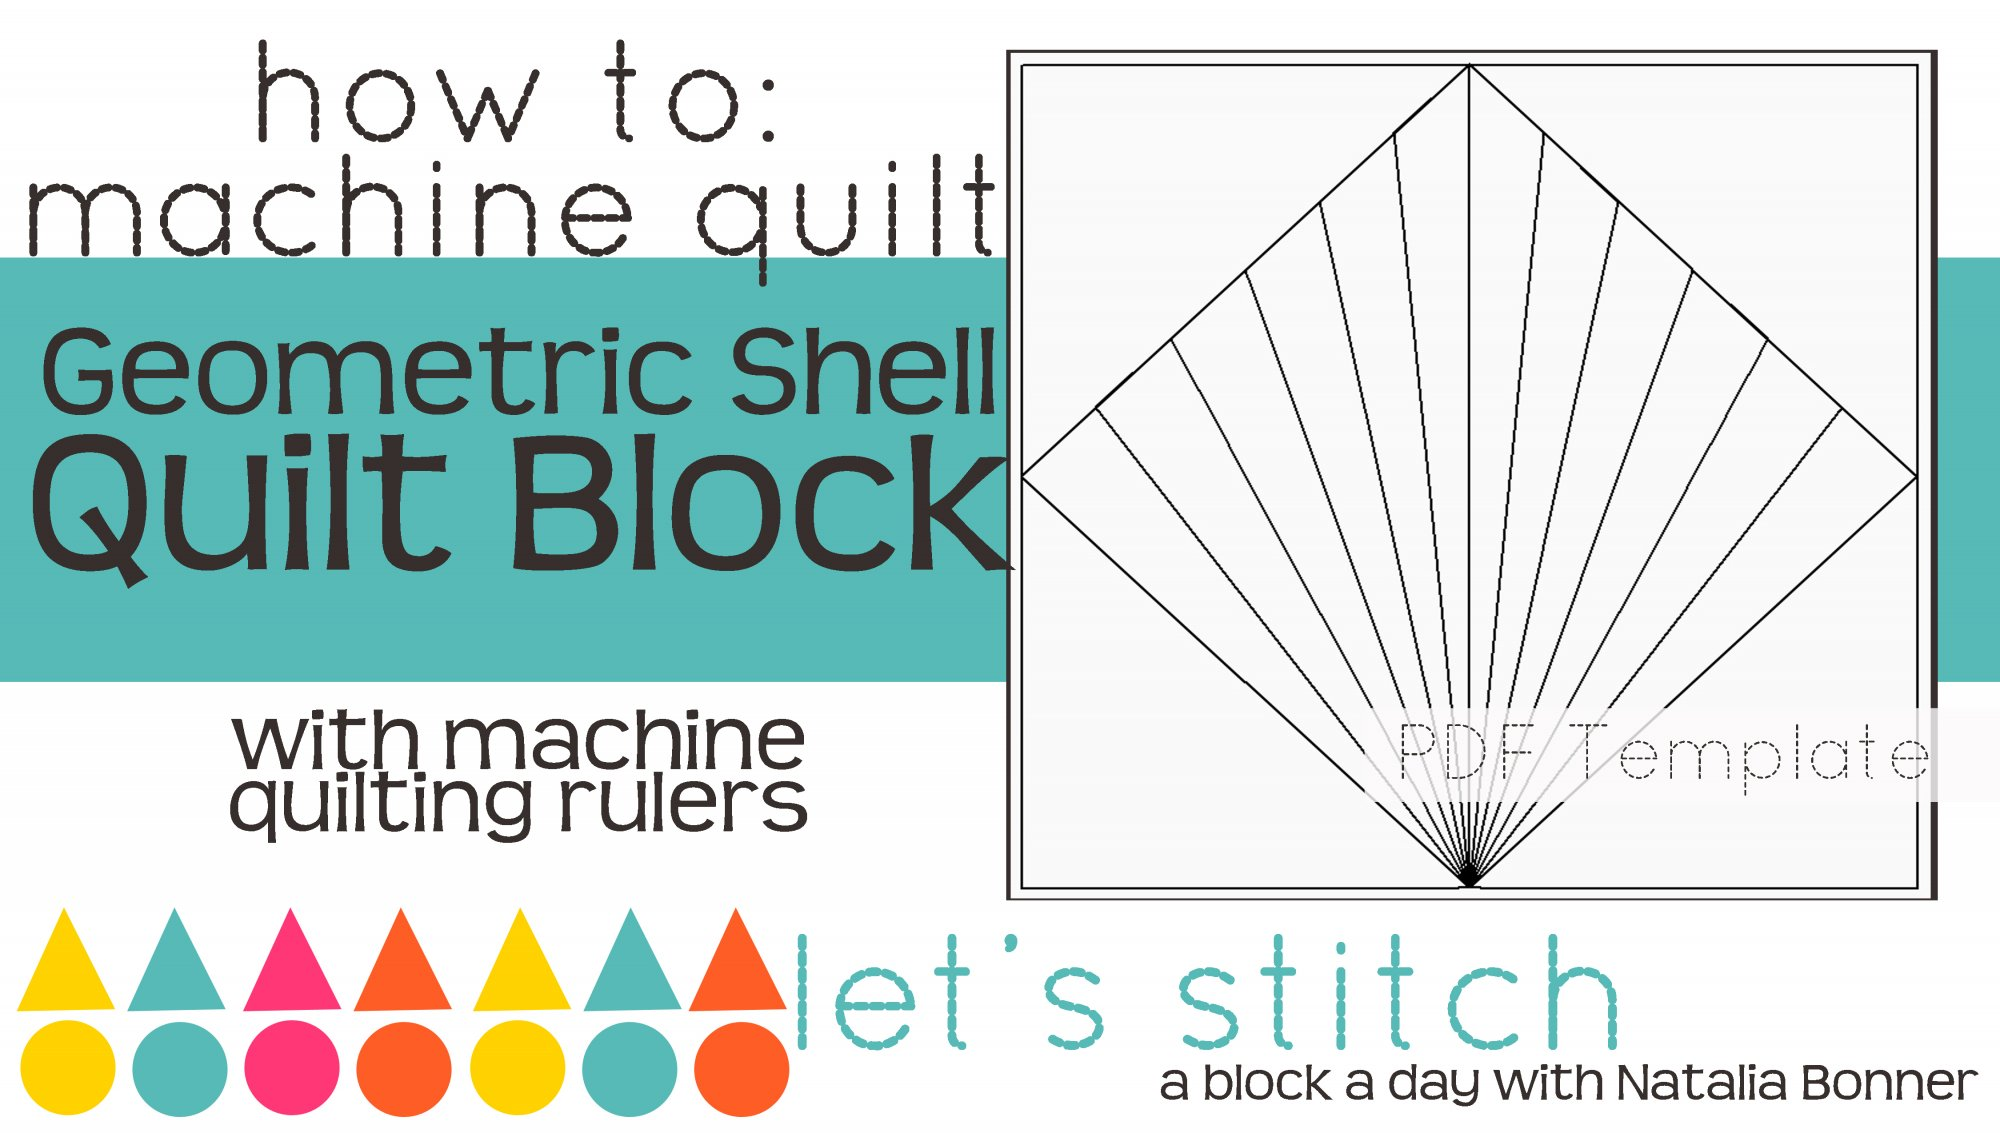 Let's Stitch - A Block a Day With Natalia Bonner - PDF - Geometric Shell